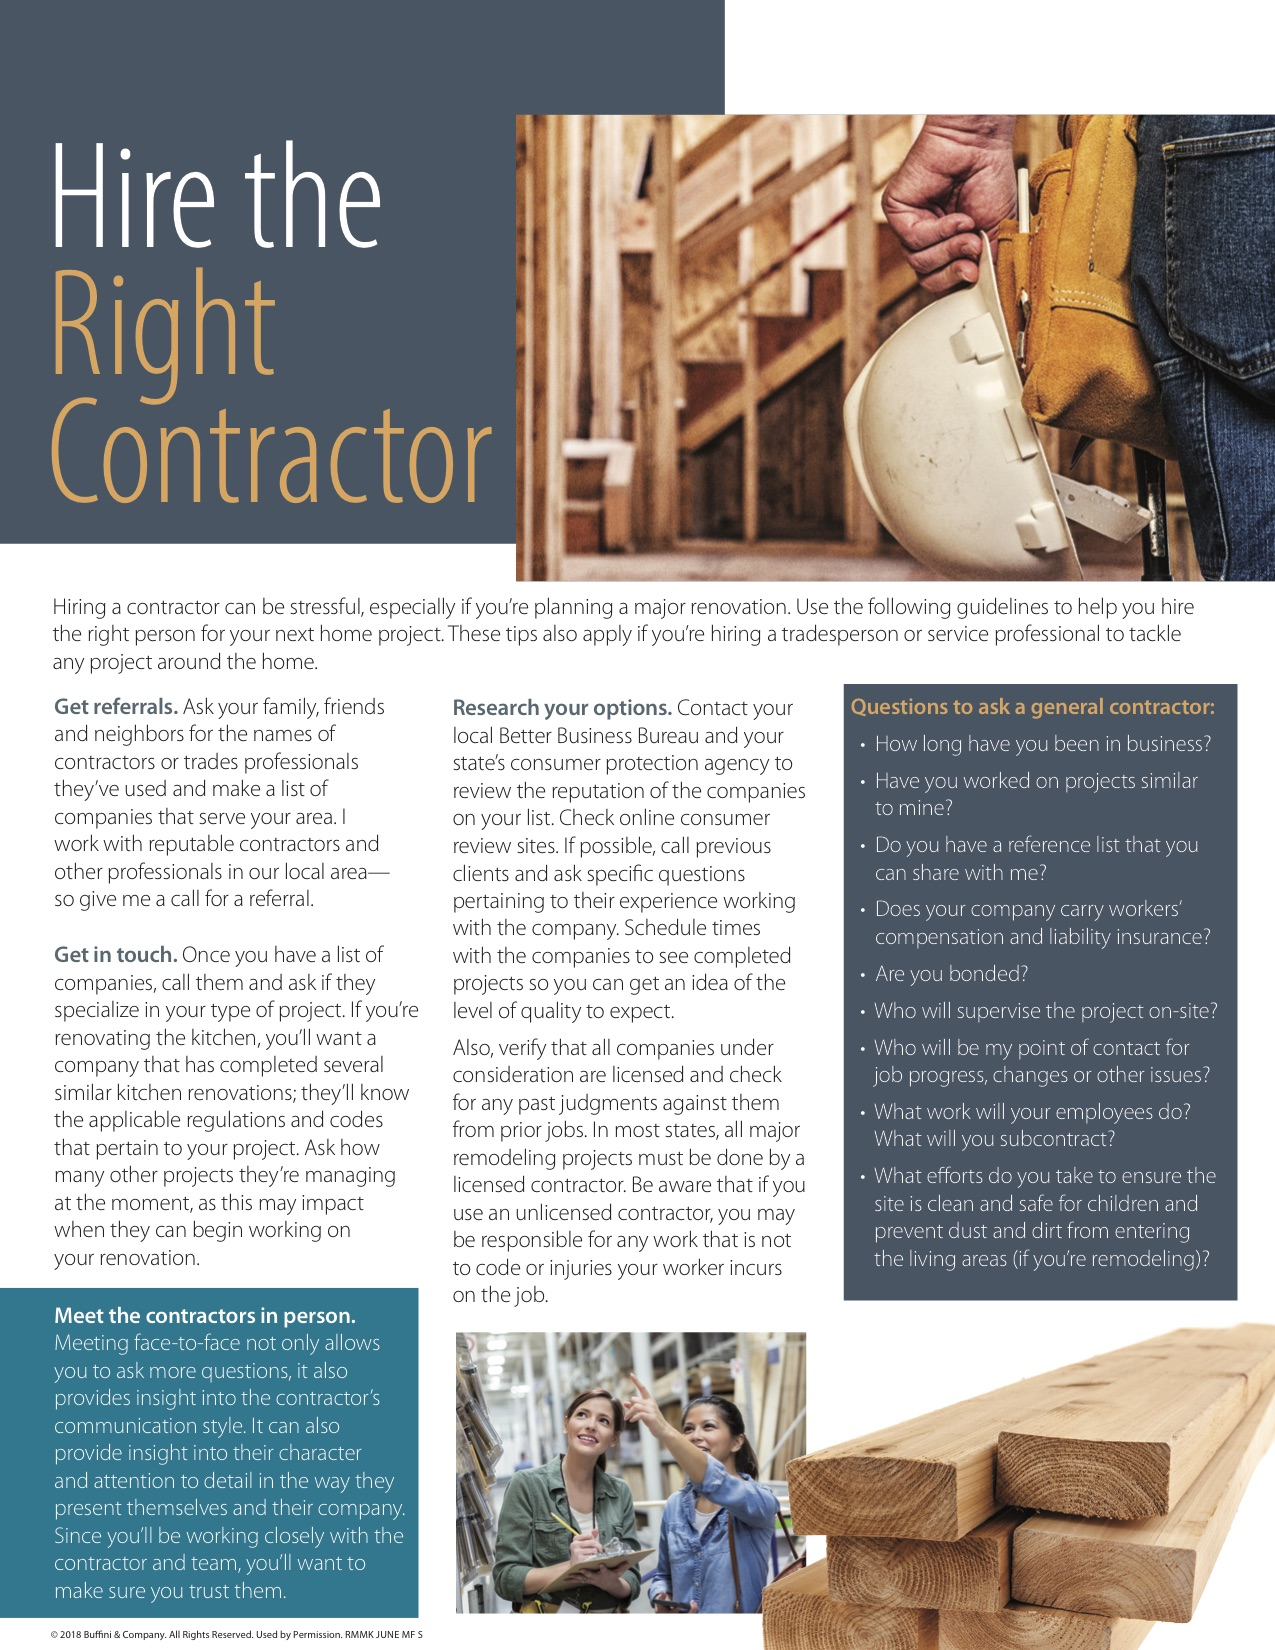 Hire The Right Contractor   BELCHER REAL ESTATE   FREDERICKSBURG AREA  REALTOR